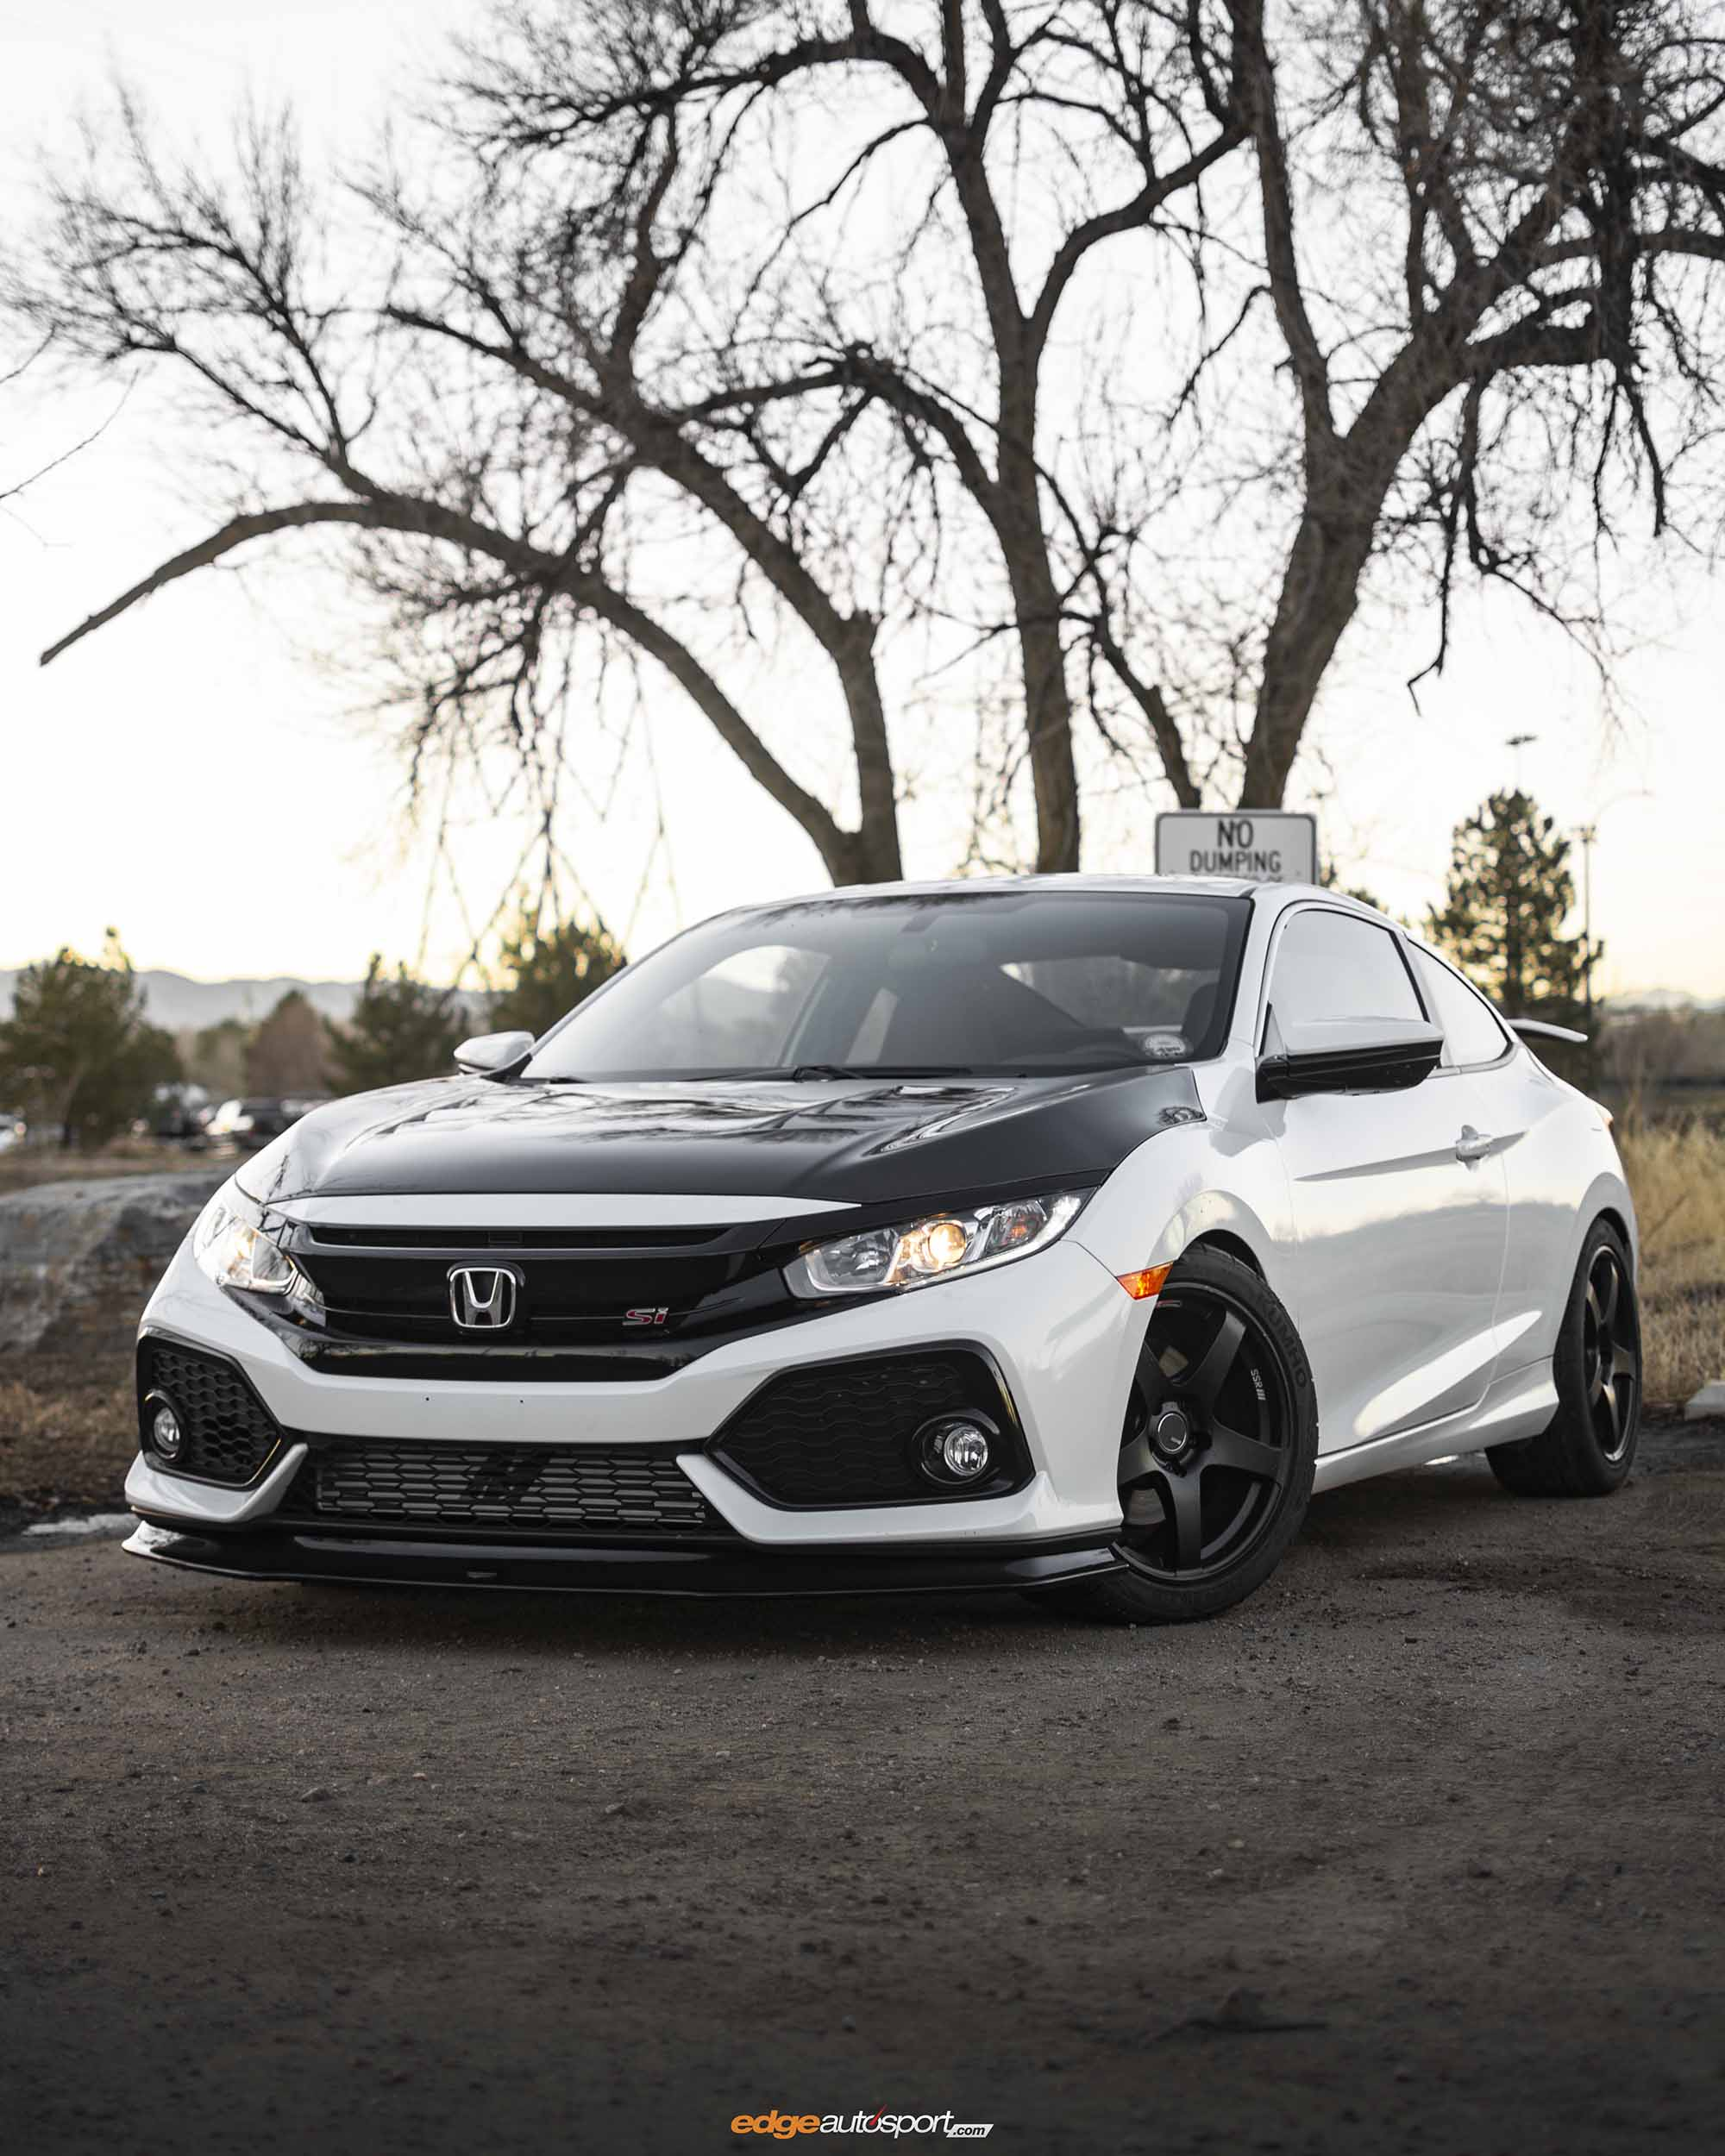 Honda Civic Modifications : honda, civic, modifications, Civic